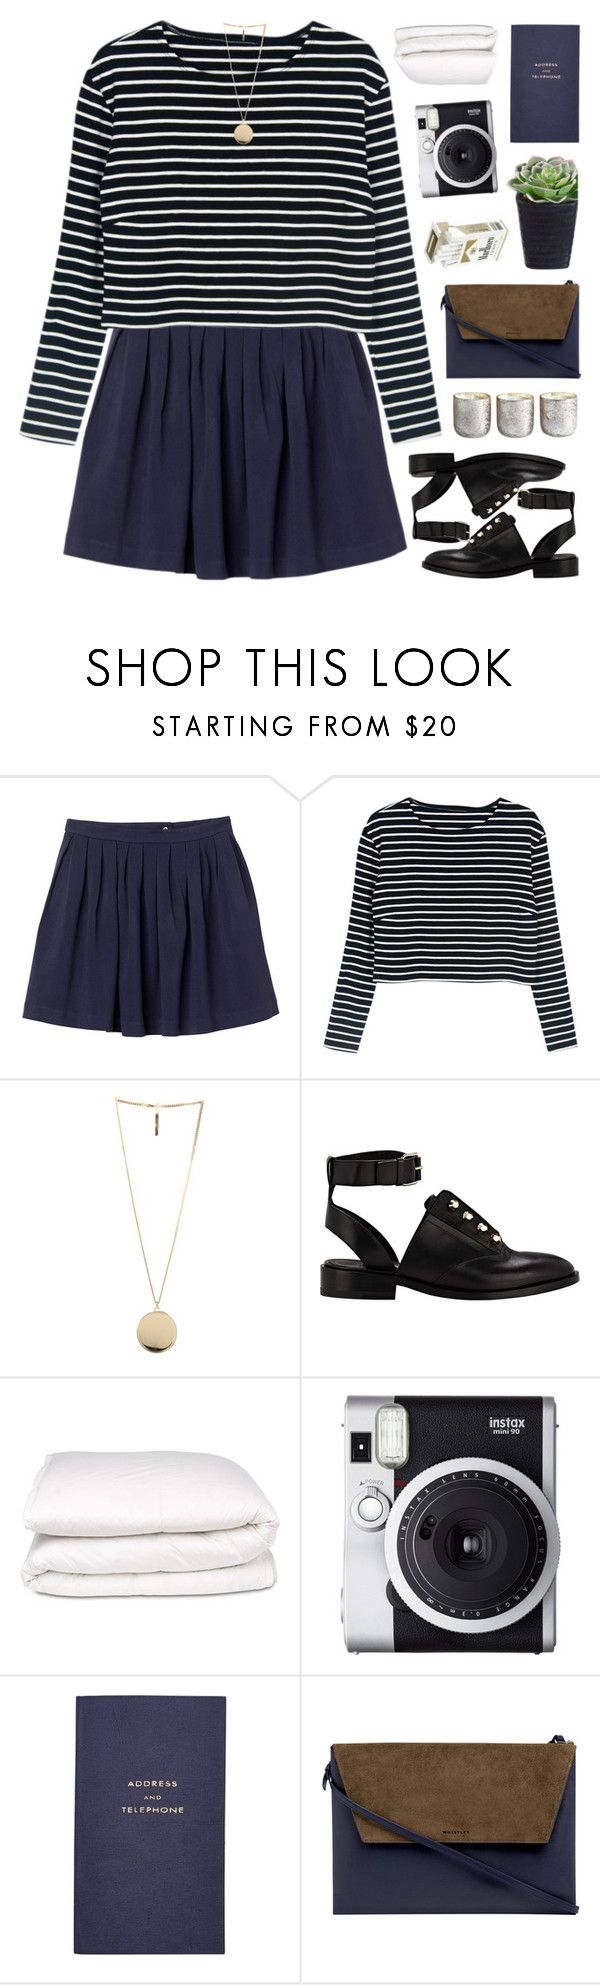 """CAN'T WORRY 'BOUT TIME"" by emmas-fashion-diary ❤ liked on Polyvore featuring Monki, Givenchy, Balenciaga, Selfridges, Fuji, Smythson, Whistles and Illume"